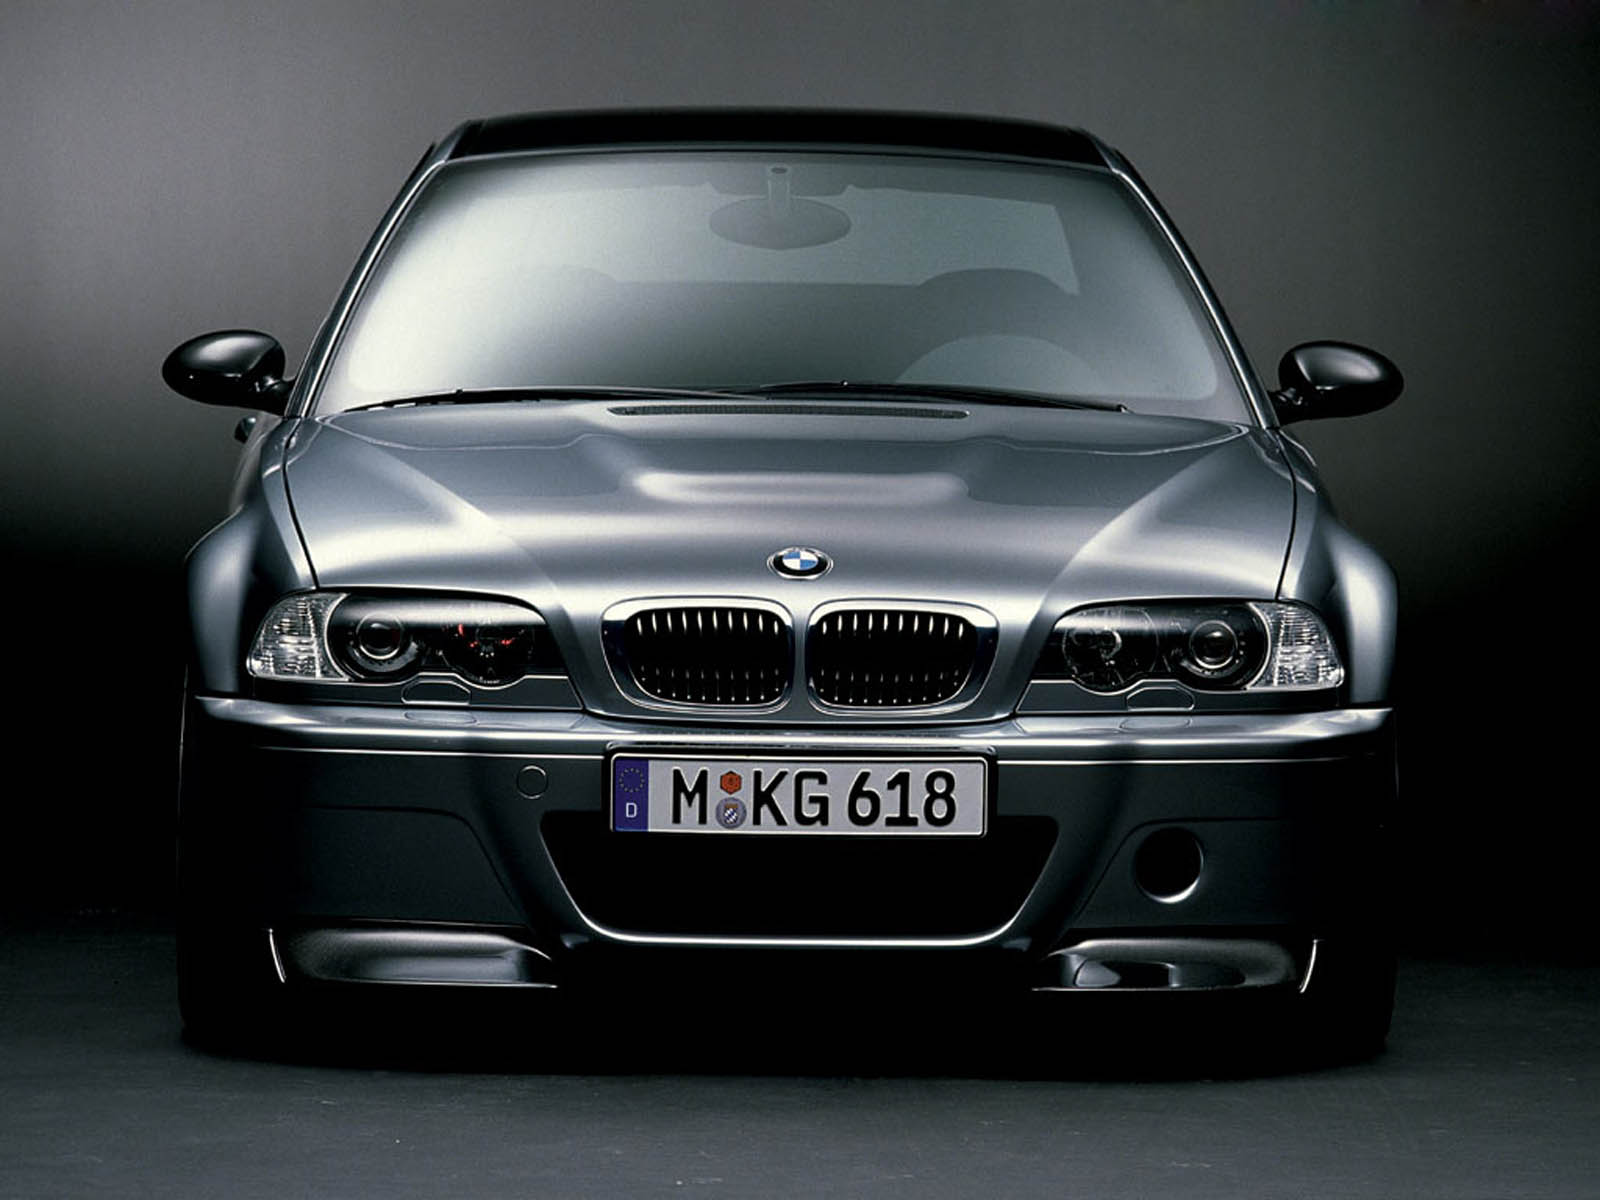 wallpapers: BMW M3 E46 CSL Car Wallpapers